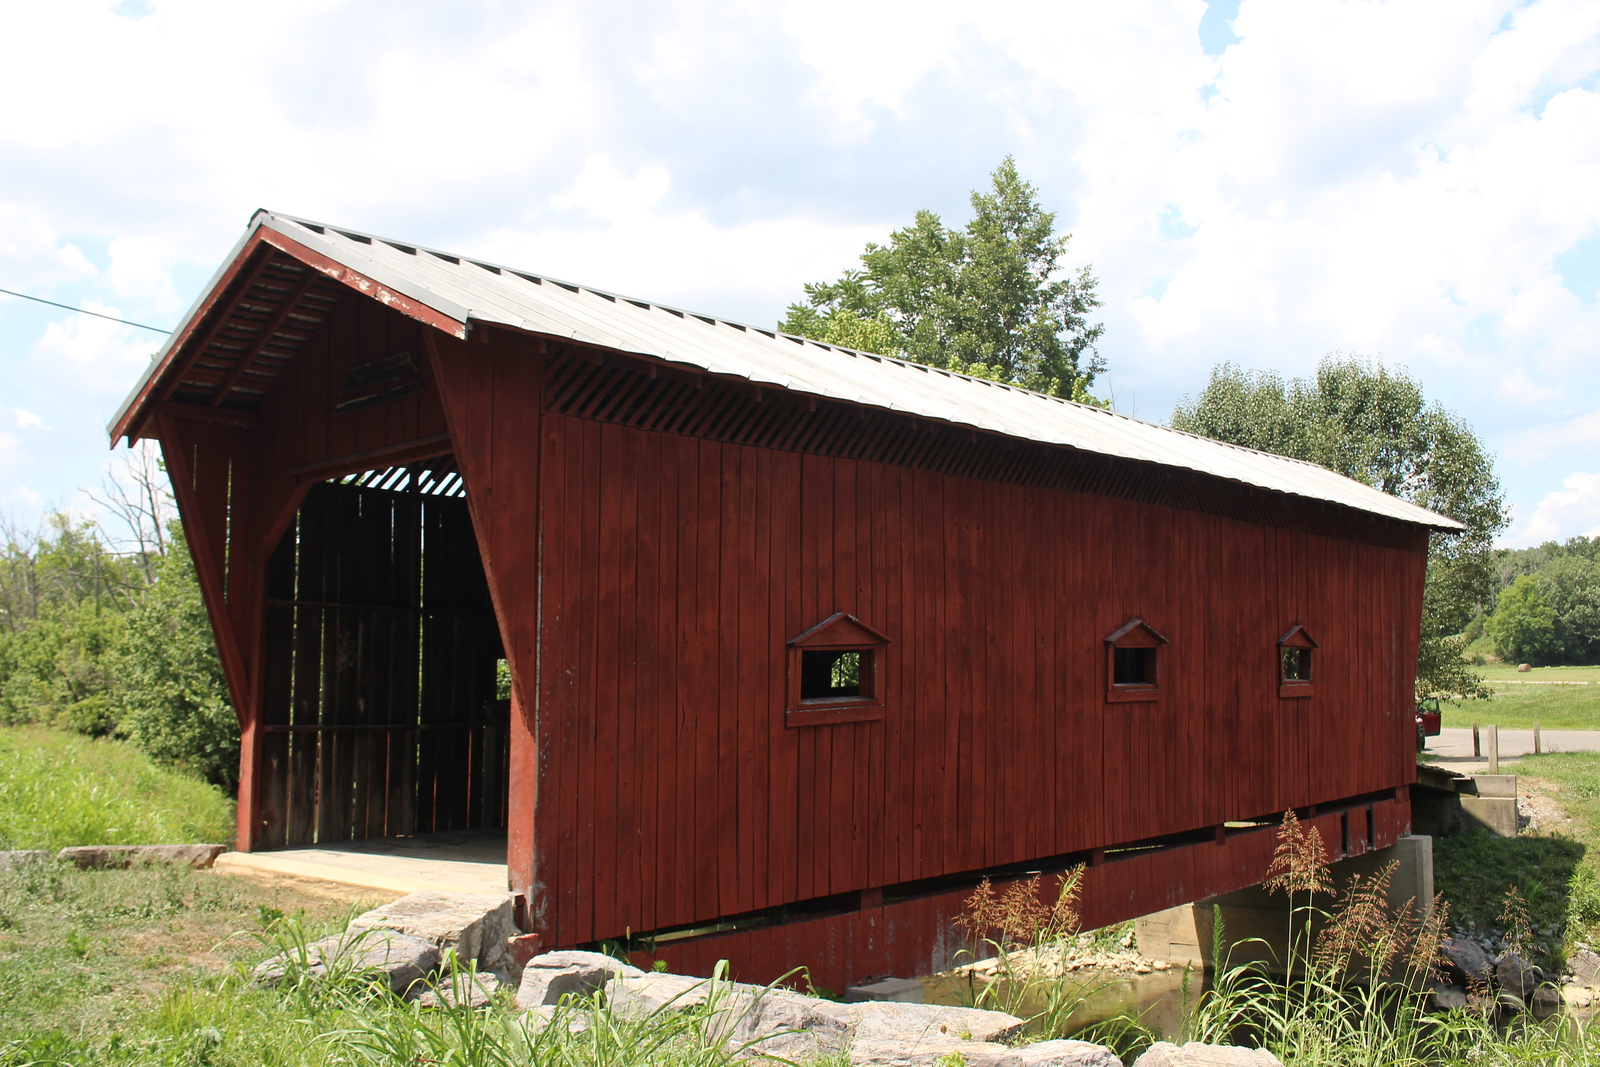 Bible Covered Bridge